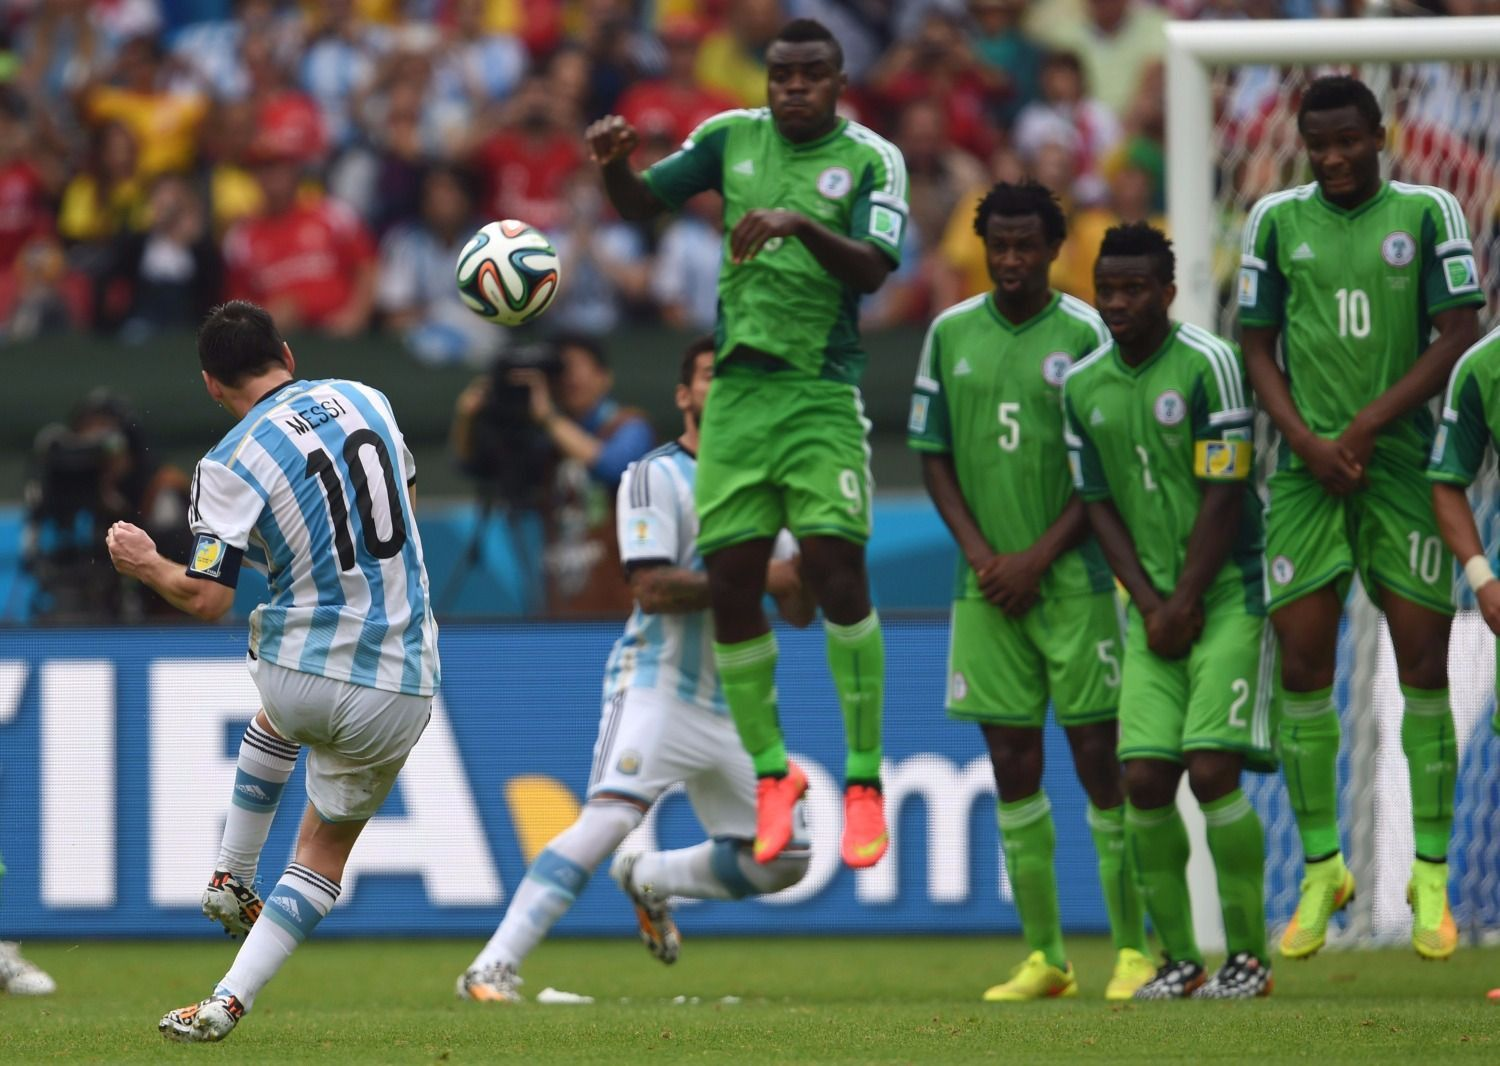 What to expect from Argentina vs Nigeria